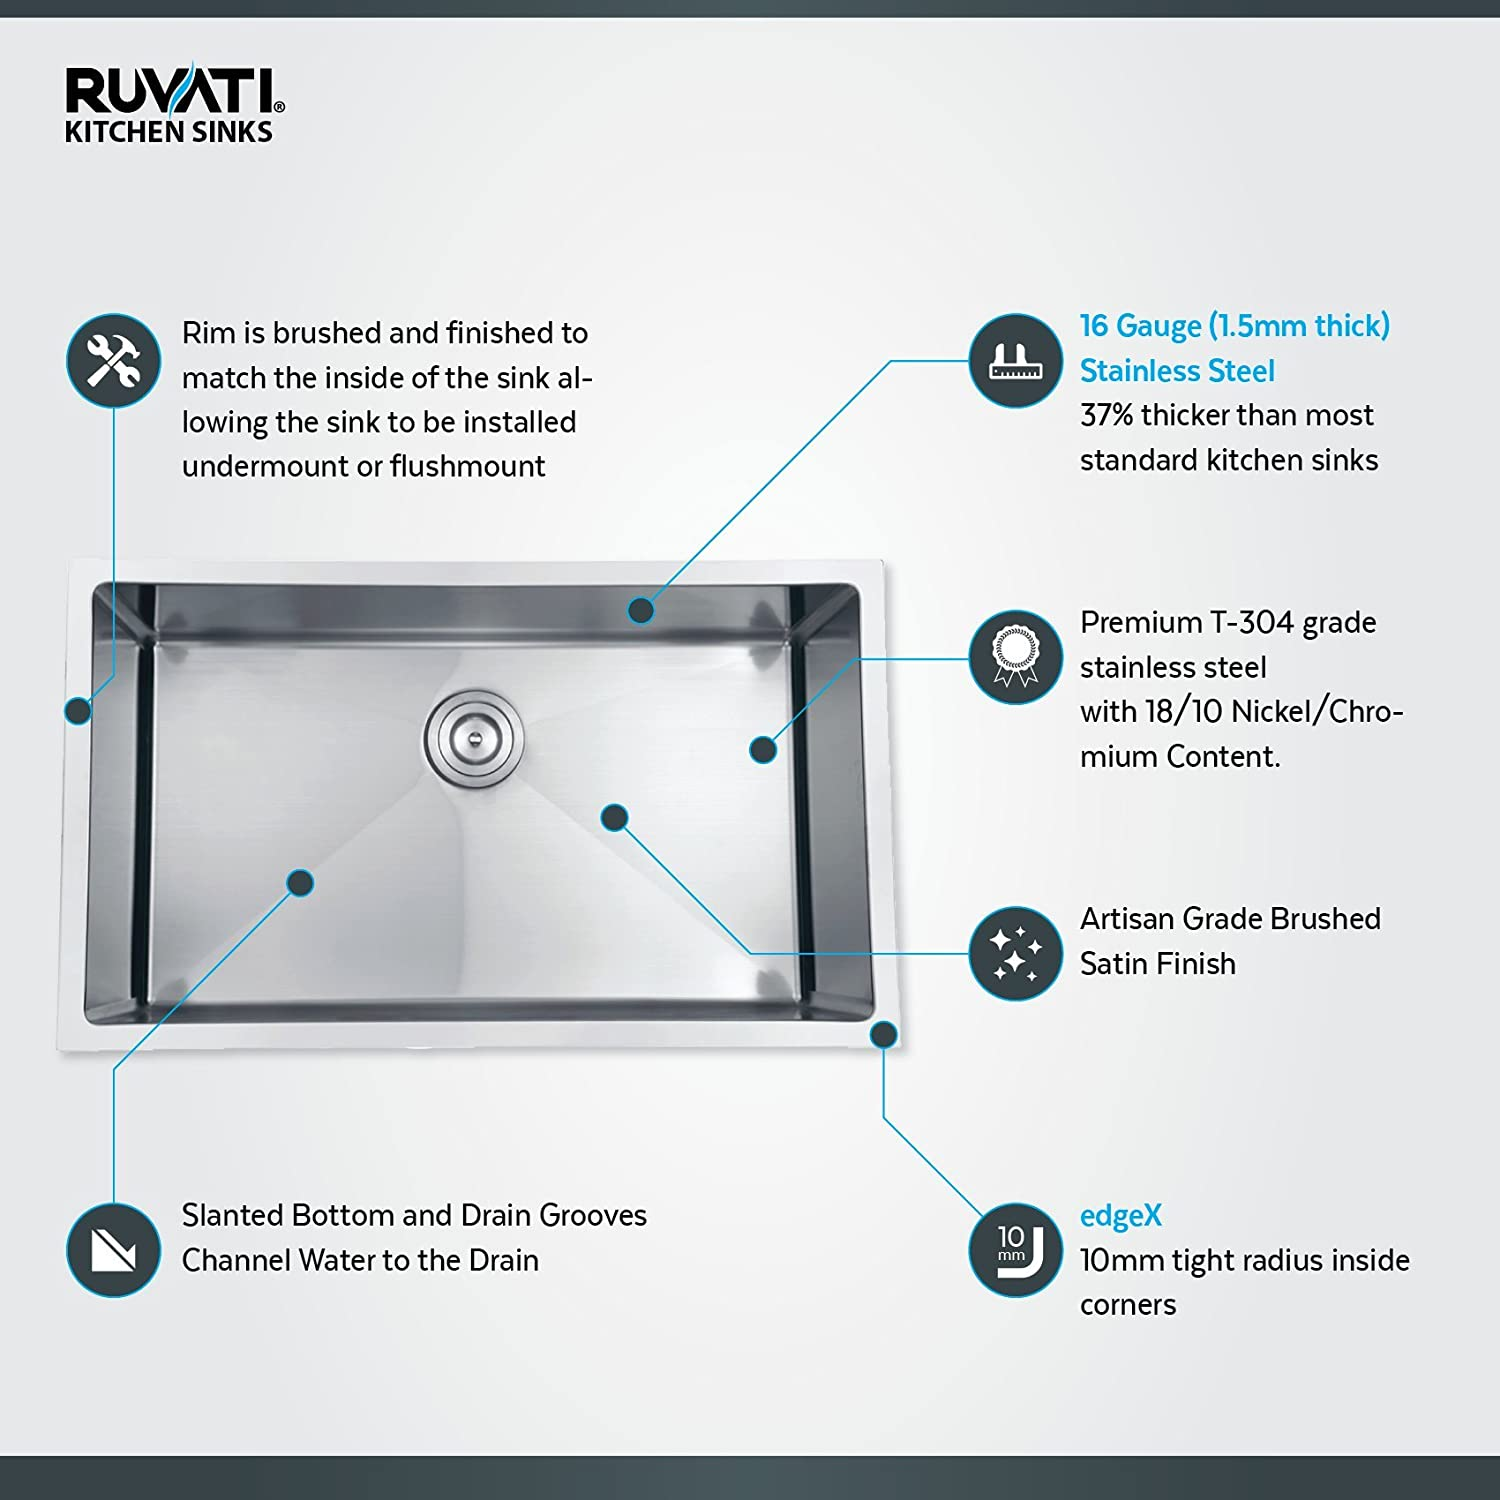 Ruvati 30 Inch Undermount 16 Gauge Tight Radius Kitchen Sink Double Drain Plumbing Diagram Car Interior Design Stainless Steel Single Bowl Rvh7300